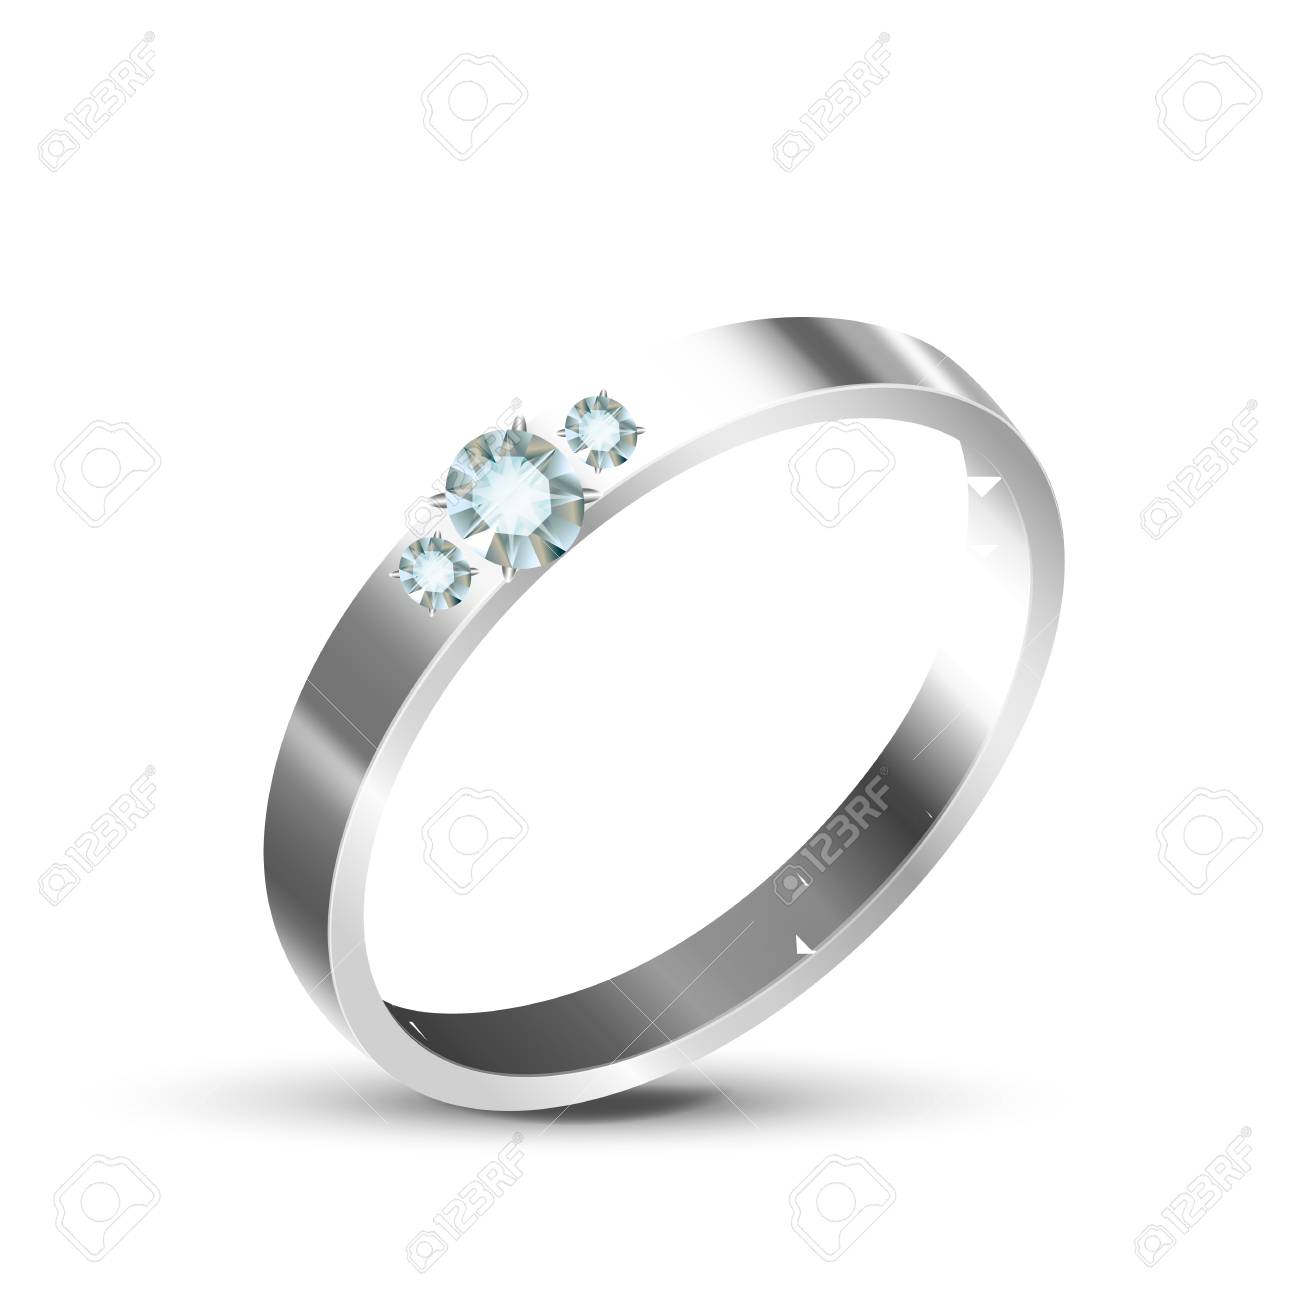 Classic Silver Or White Gold Diamond Ring Vector Bright Beauty